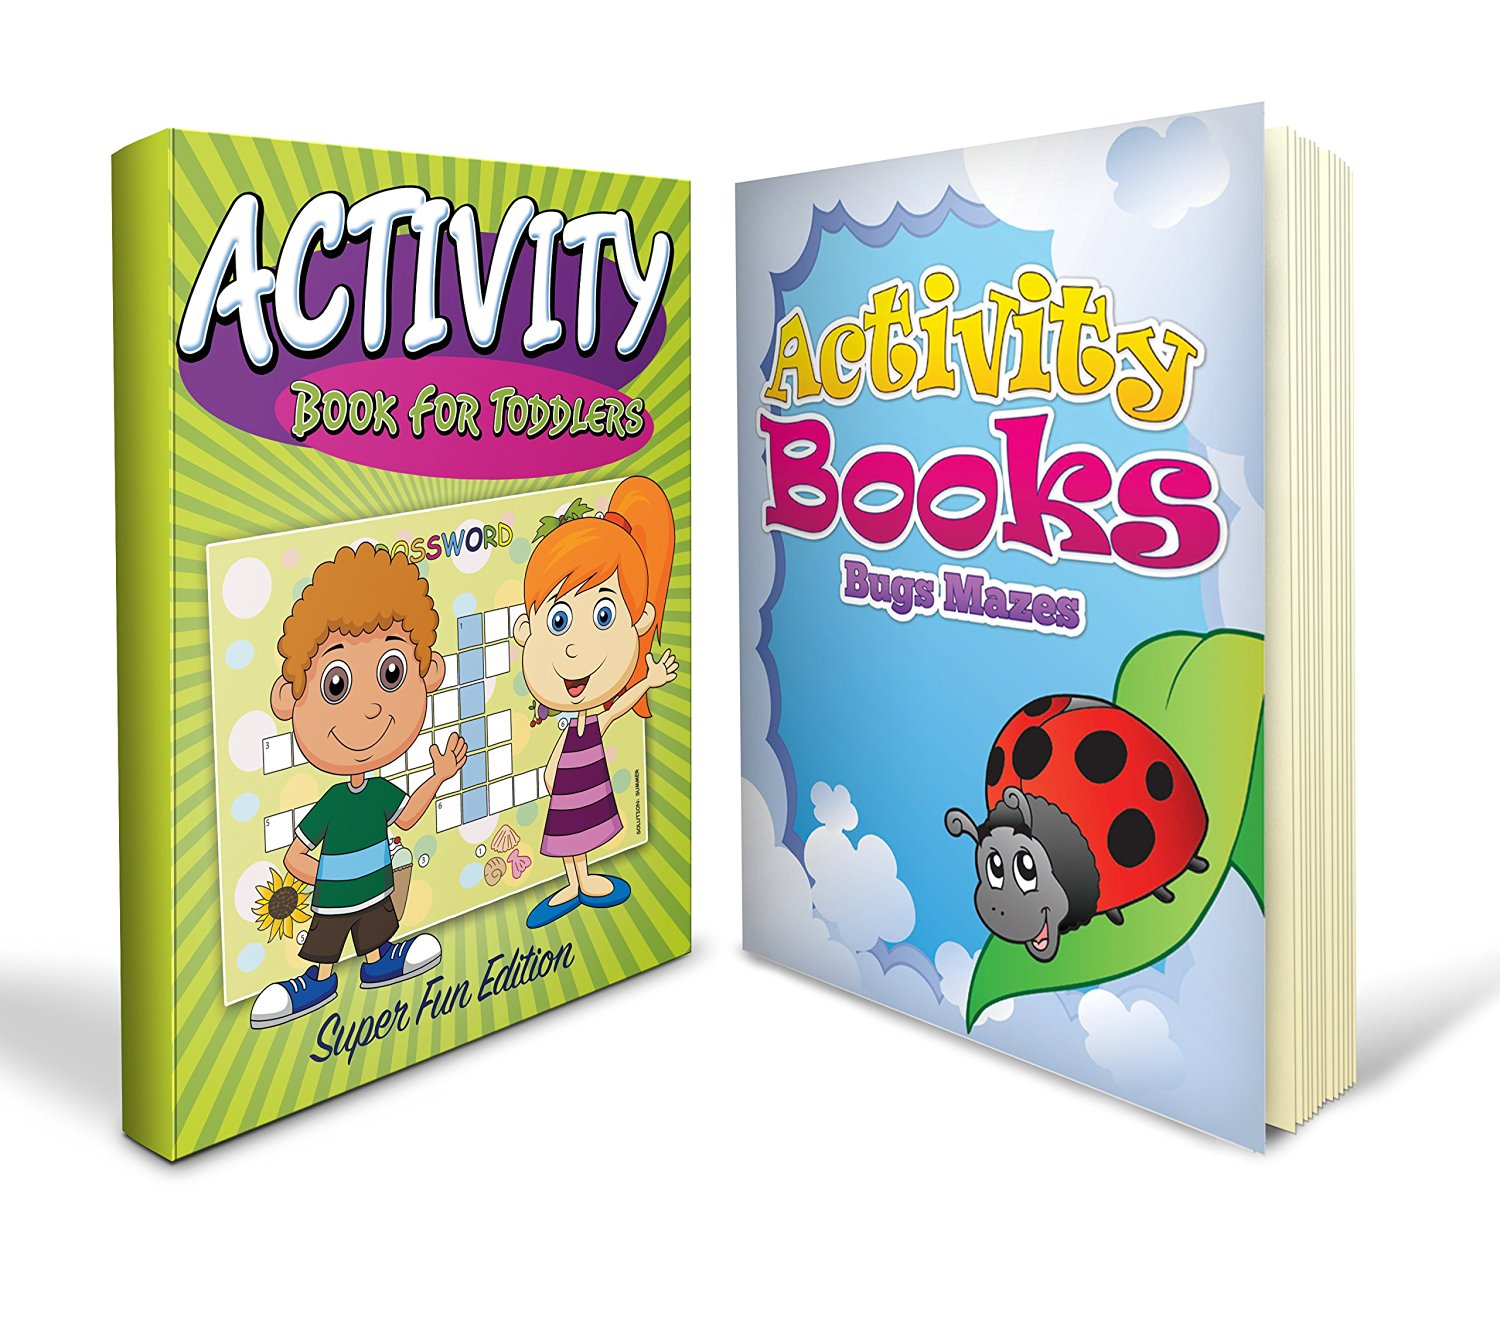 Activity Books Toddlers Bundle with Learning Pages for Boys and Girls